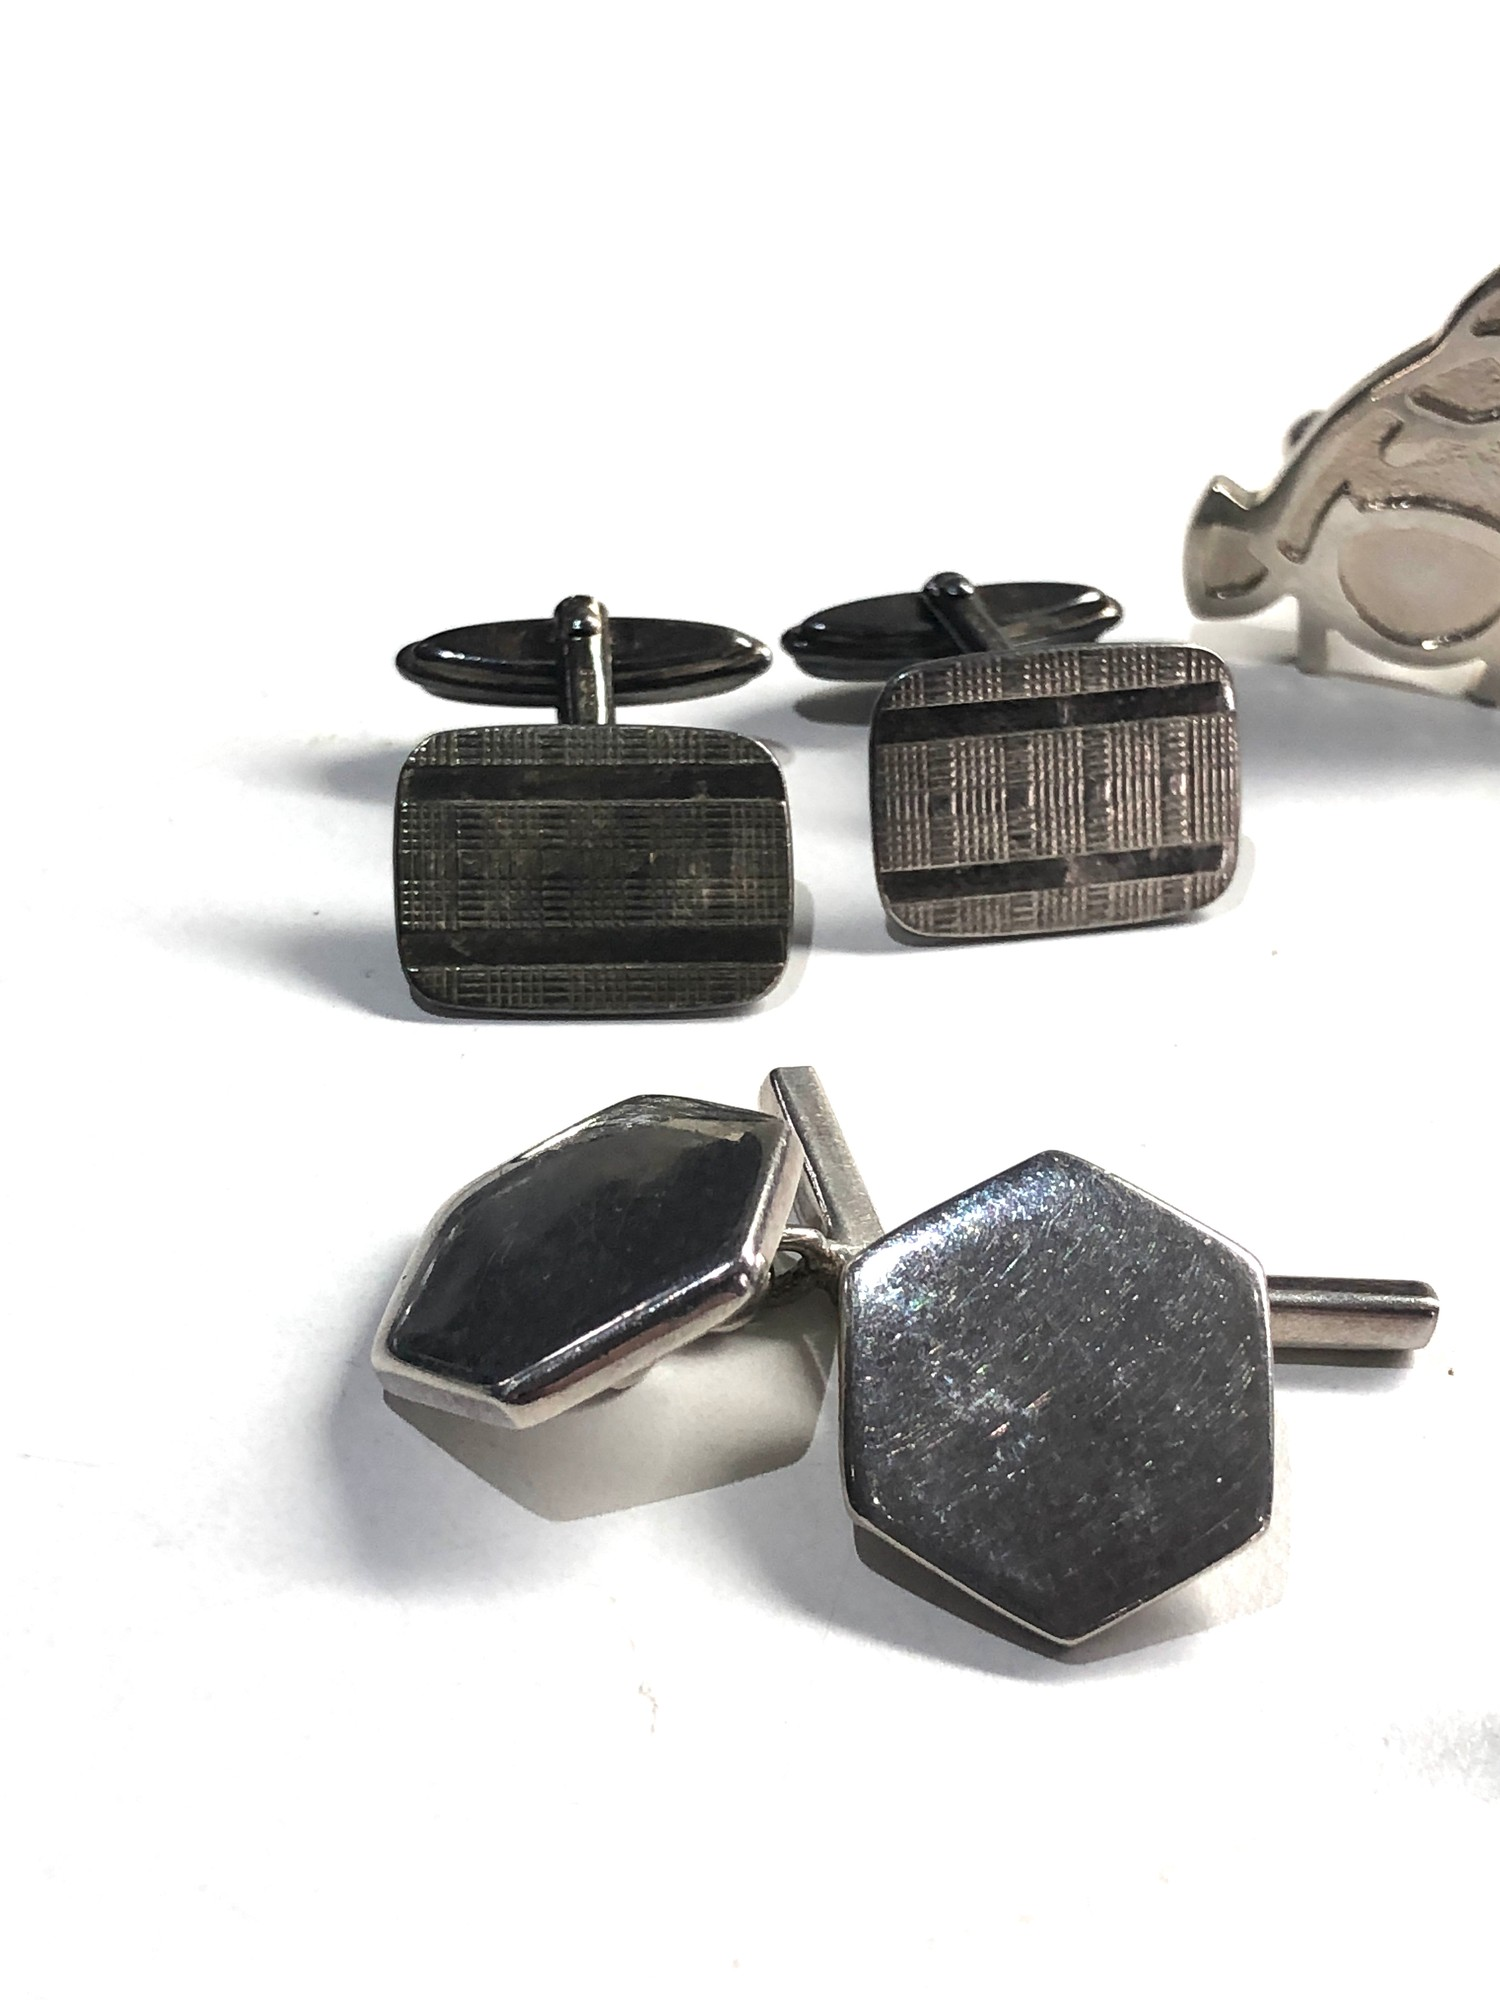 5 pairs of vintage gents silver cufflinks - Image 2 of 4